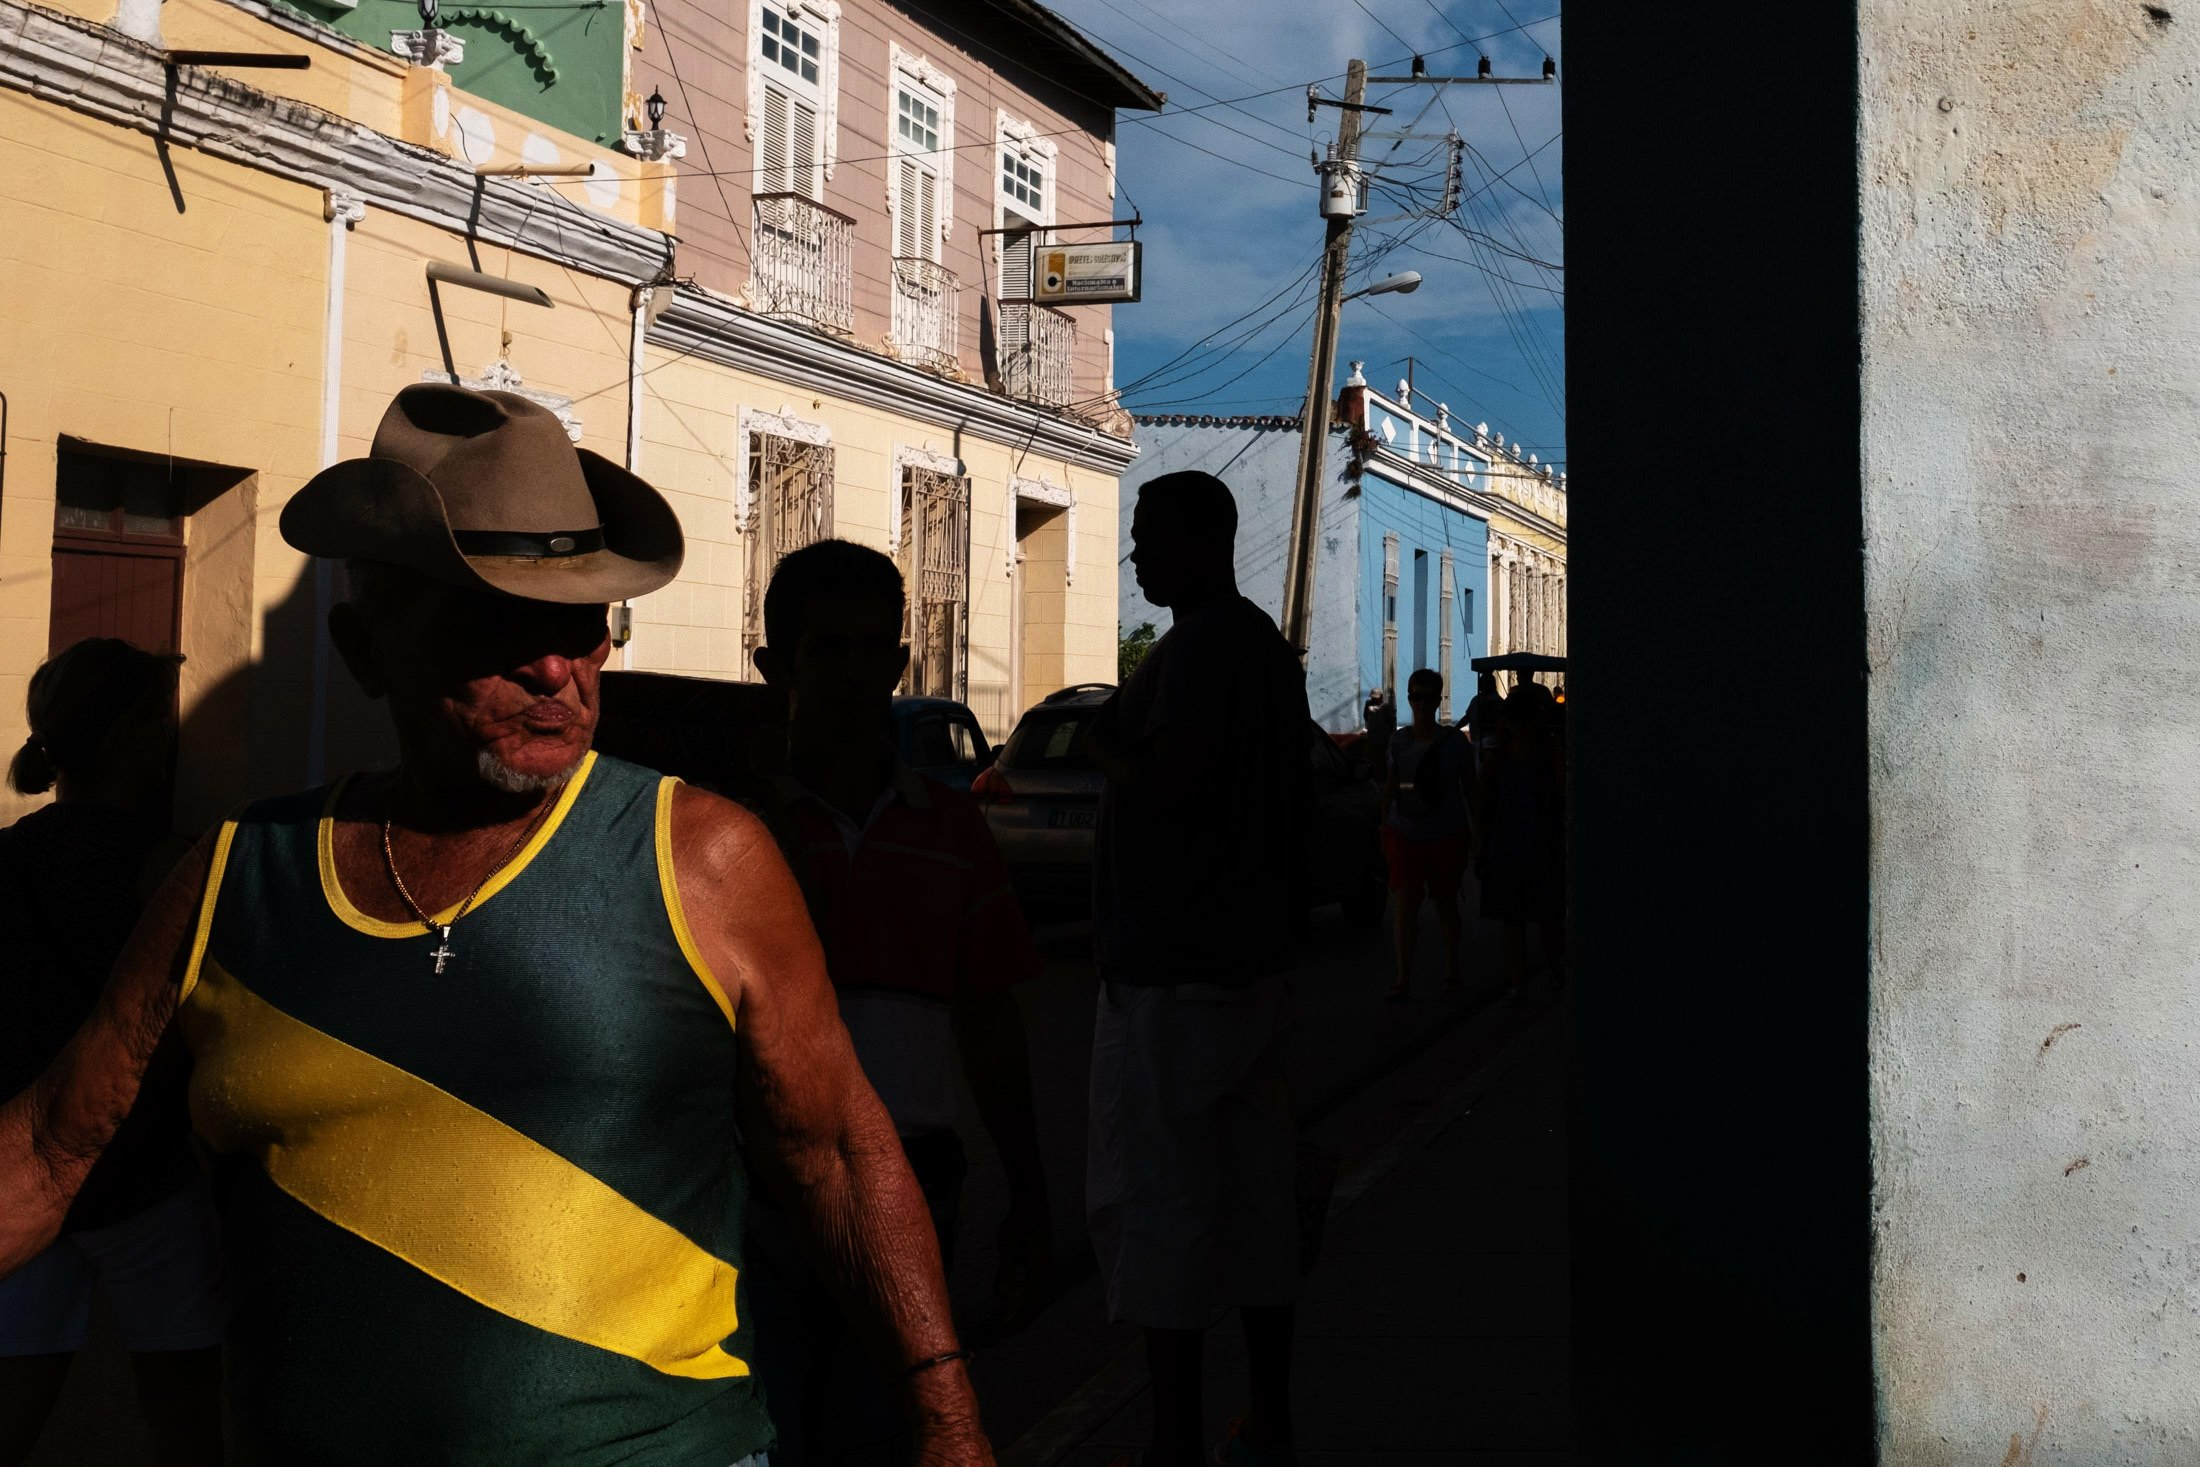 man in cowboy hat wearing green and yellow striped vest